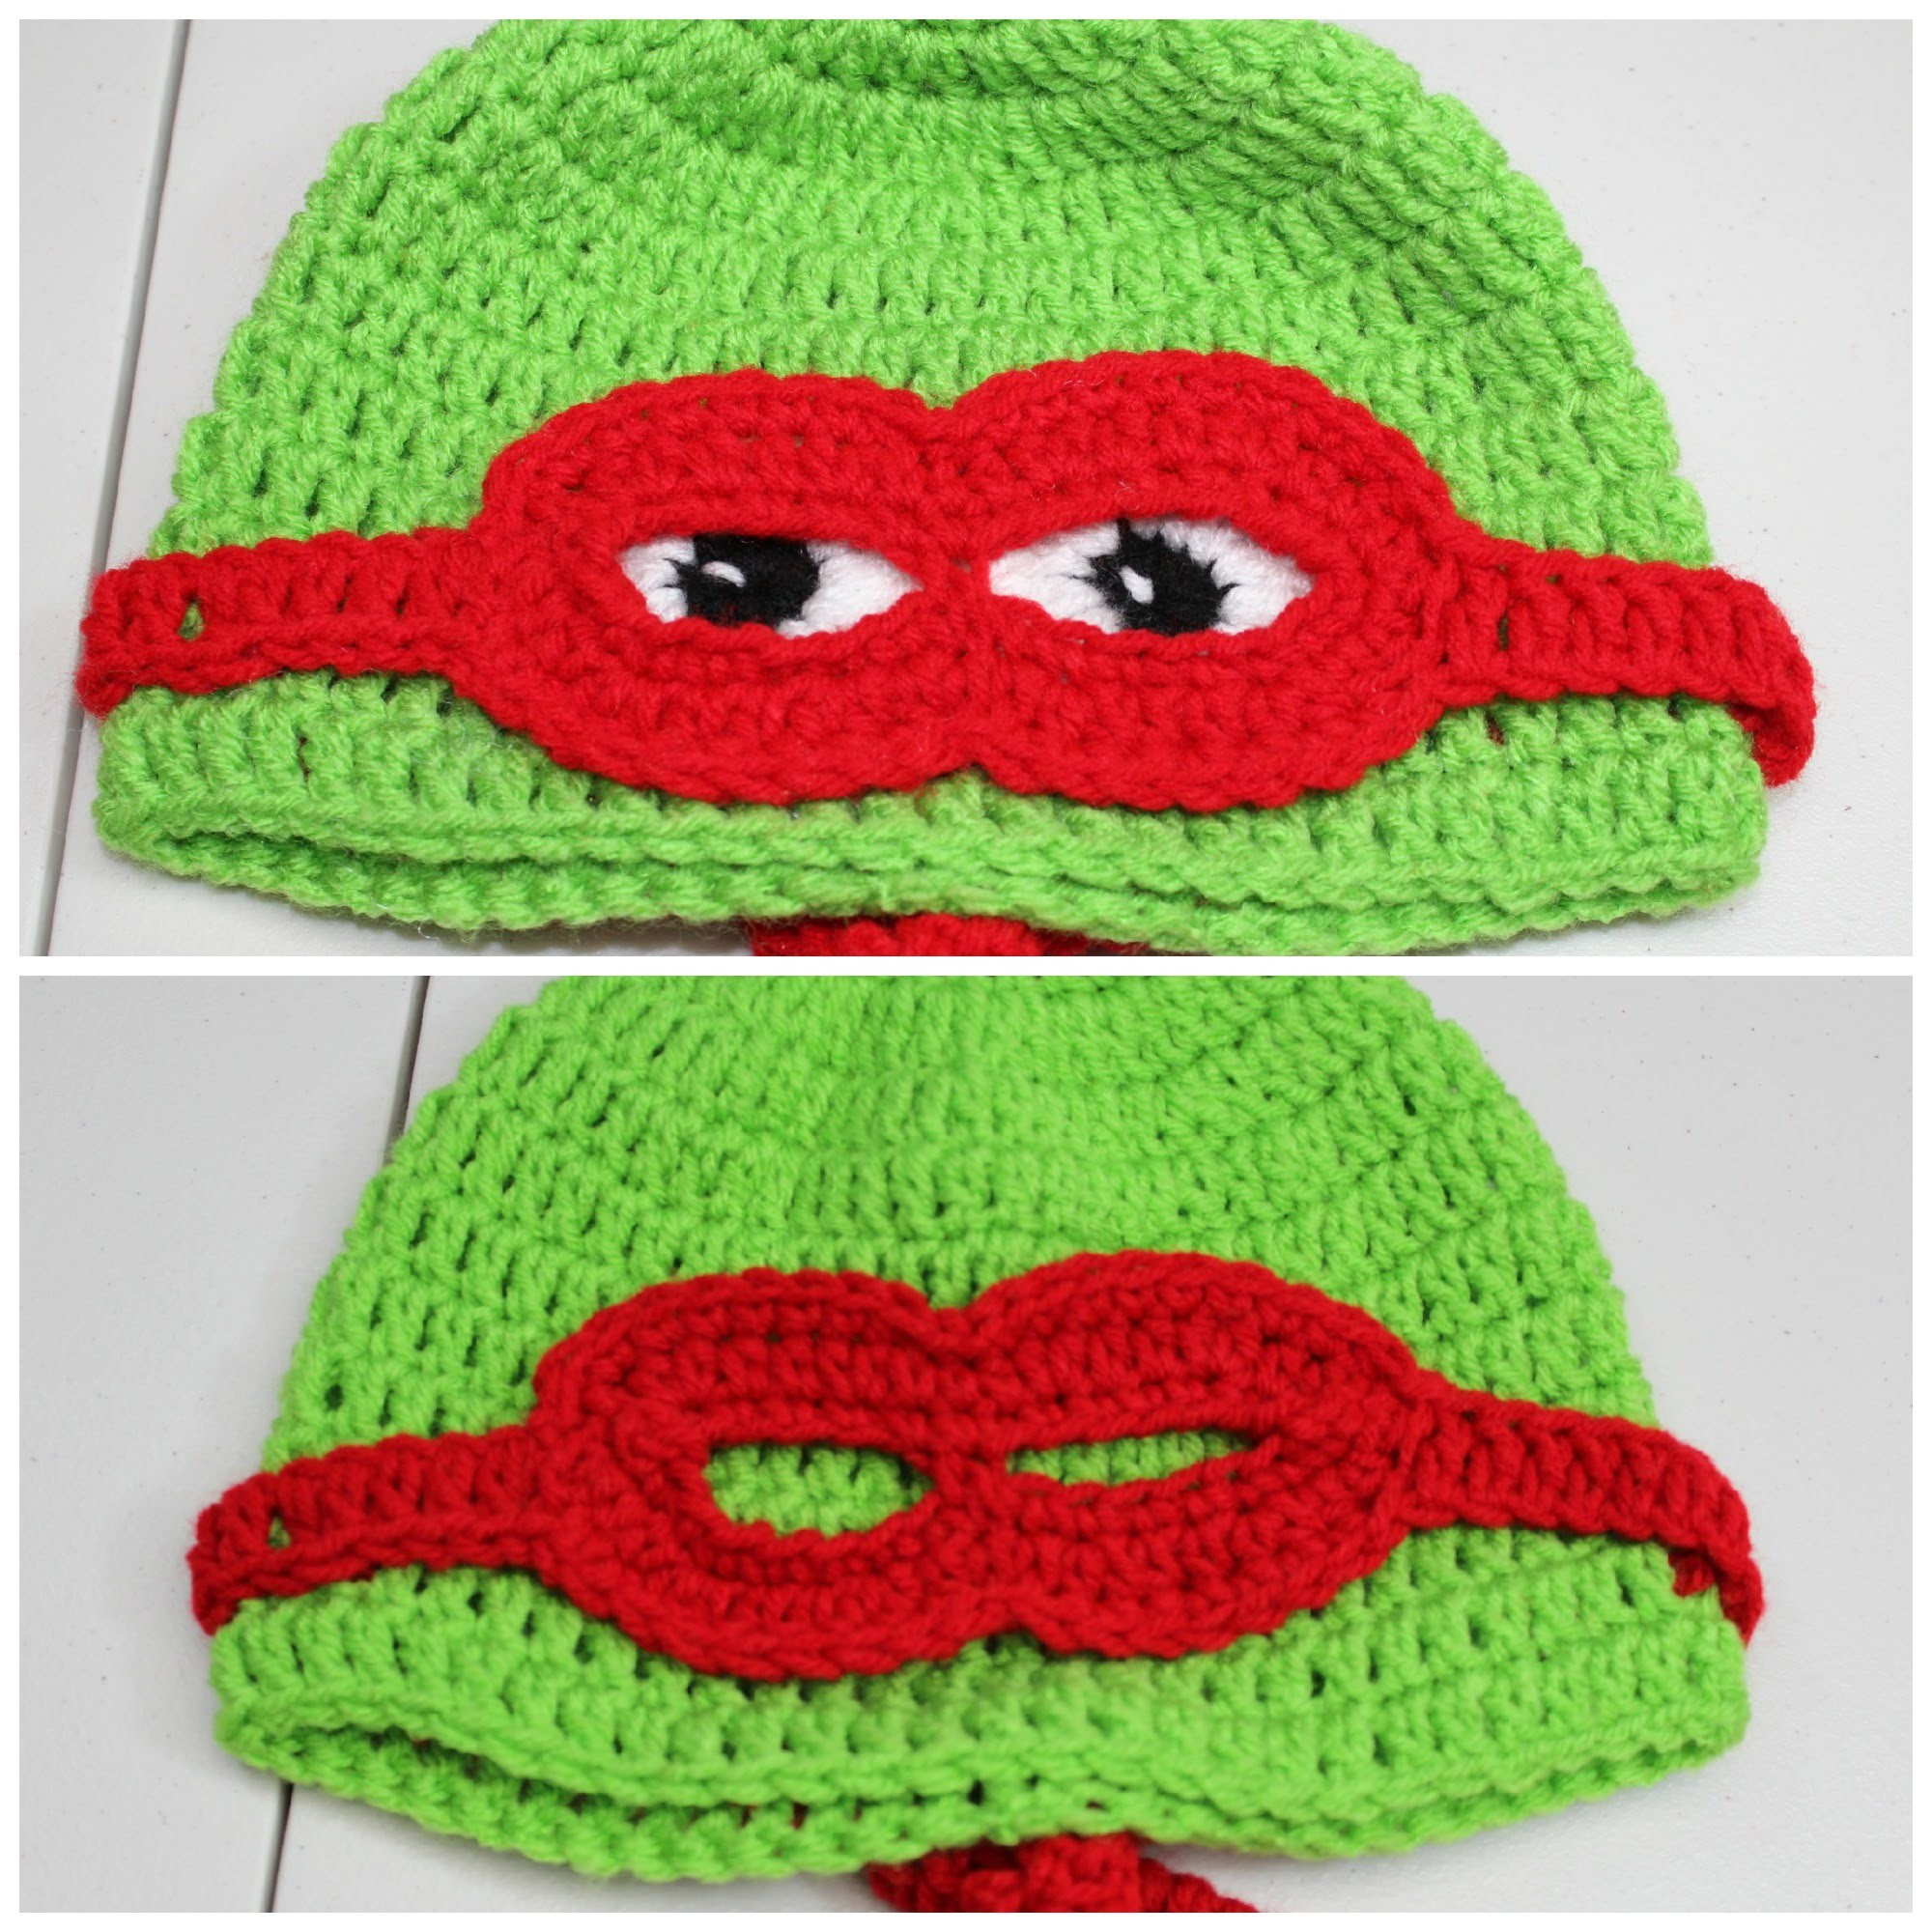 Gorro de tortuga con mascara  en #Crochet - video 1